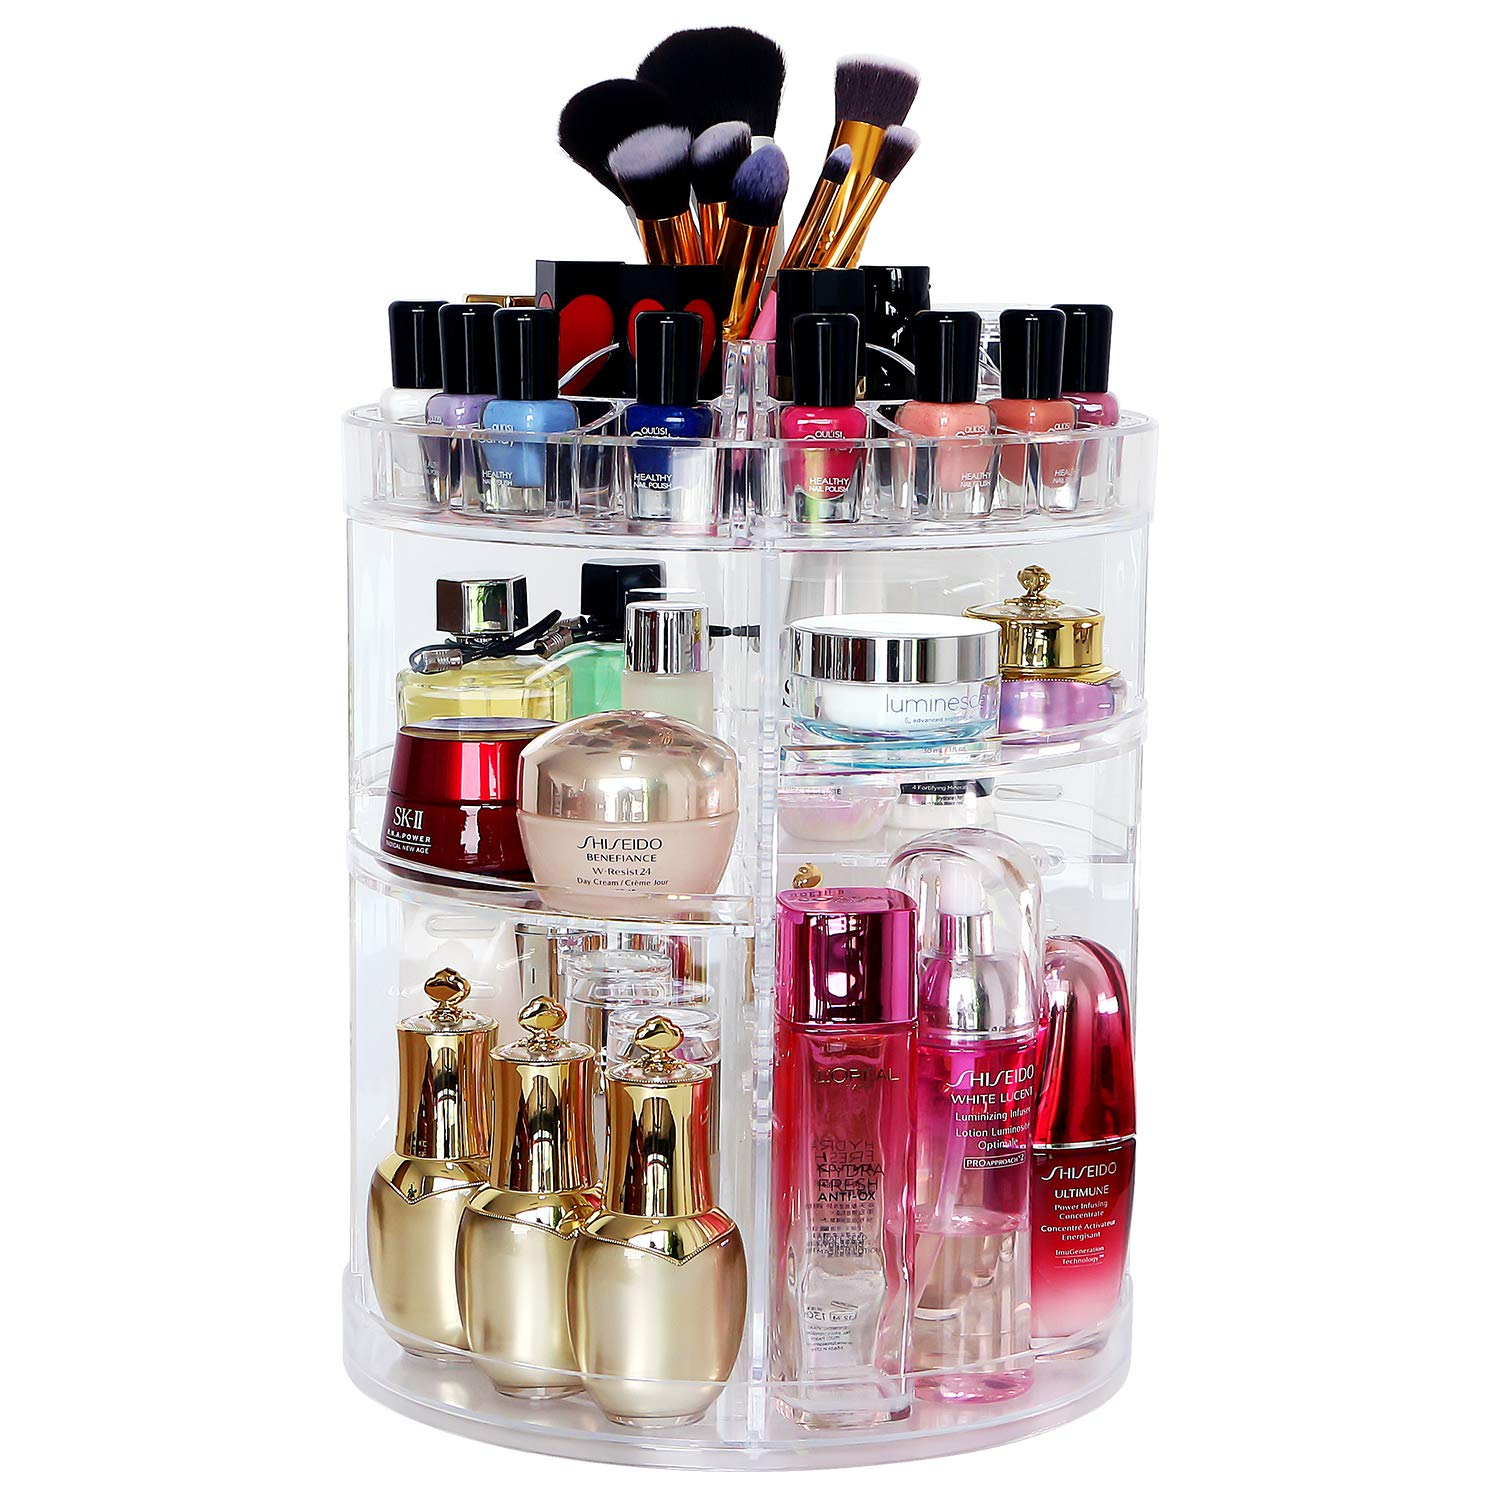 514190a808ca COOLBEAR Makeup Organizer,360 Degree Rotating Adjustable Acrylic Cosmetic  Storage Display Case with 6 Layers Large Capacity, Fits Creams, Makeup ...